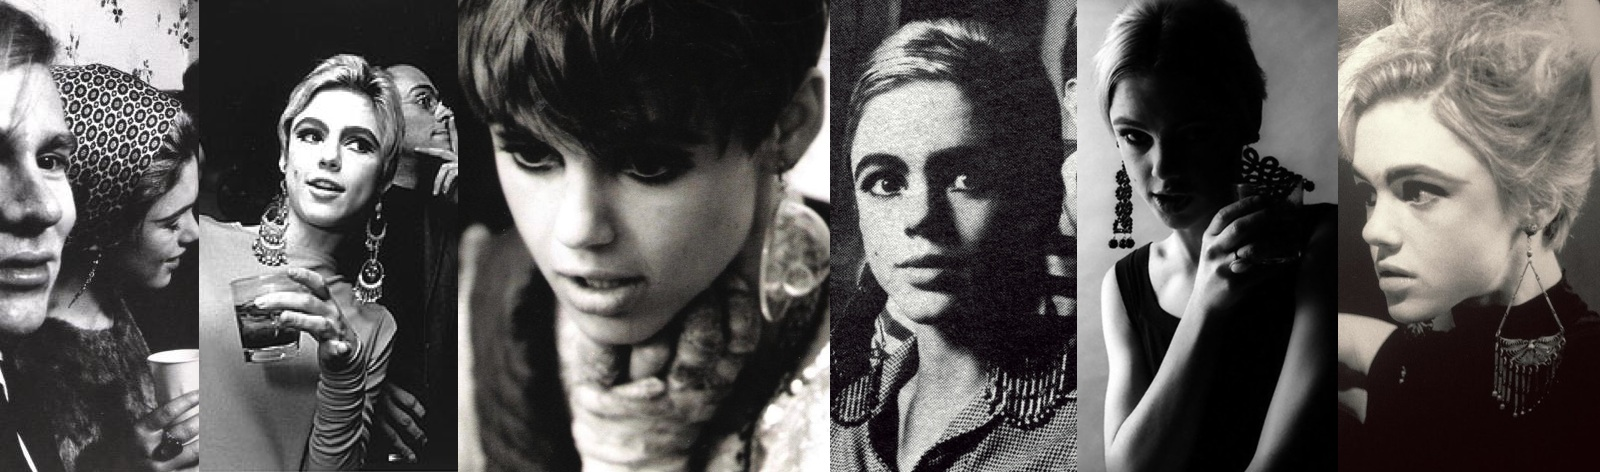 edie sedgwick earrings dolly rocker green earrings i remember the rings of 134